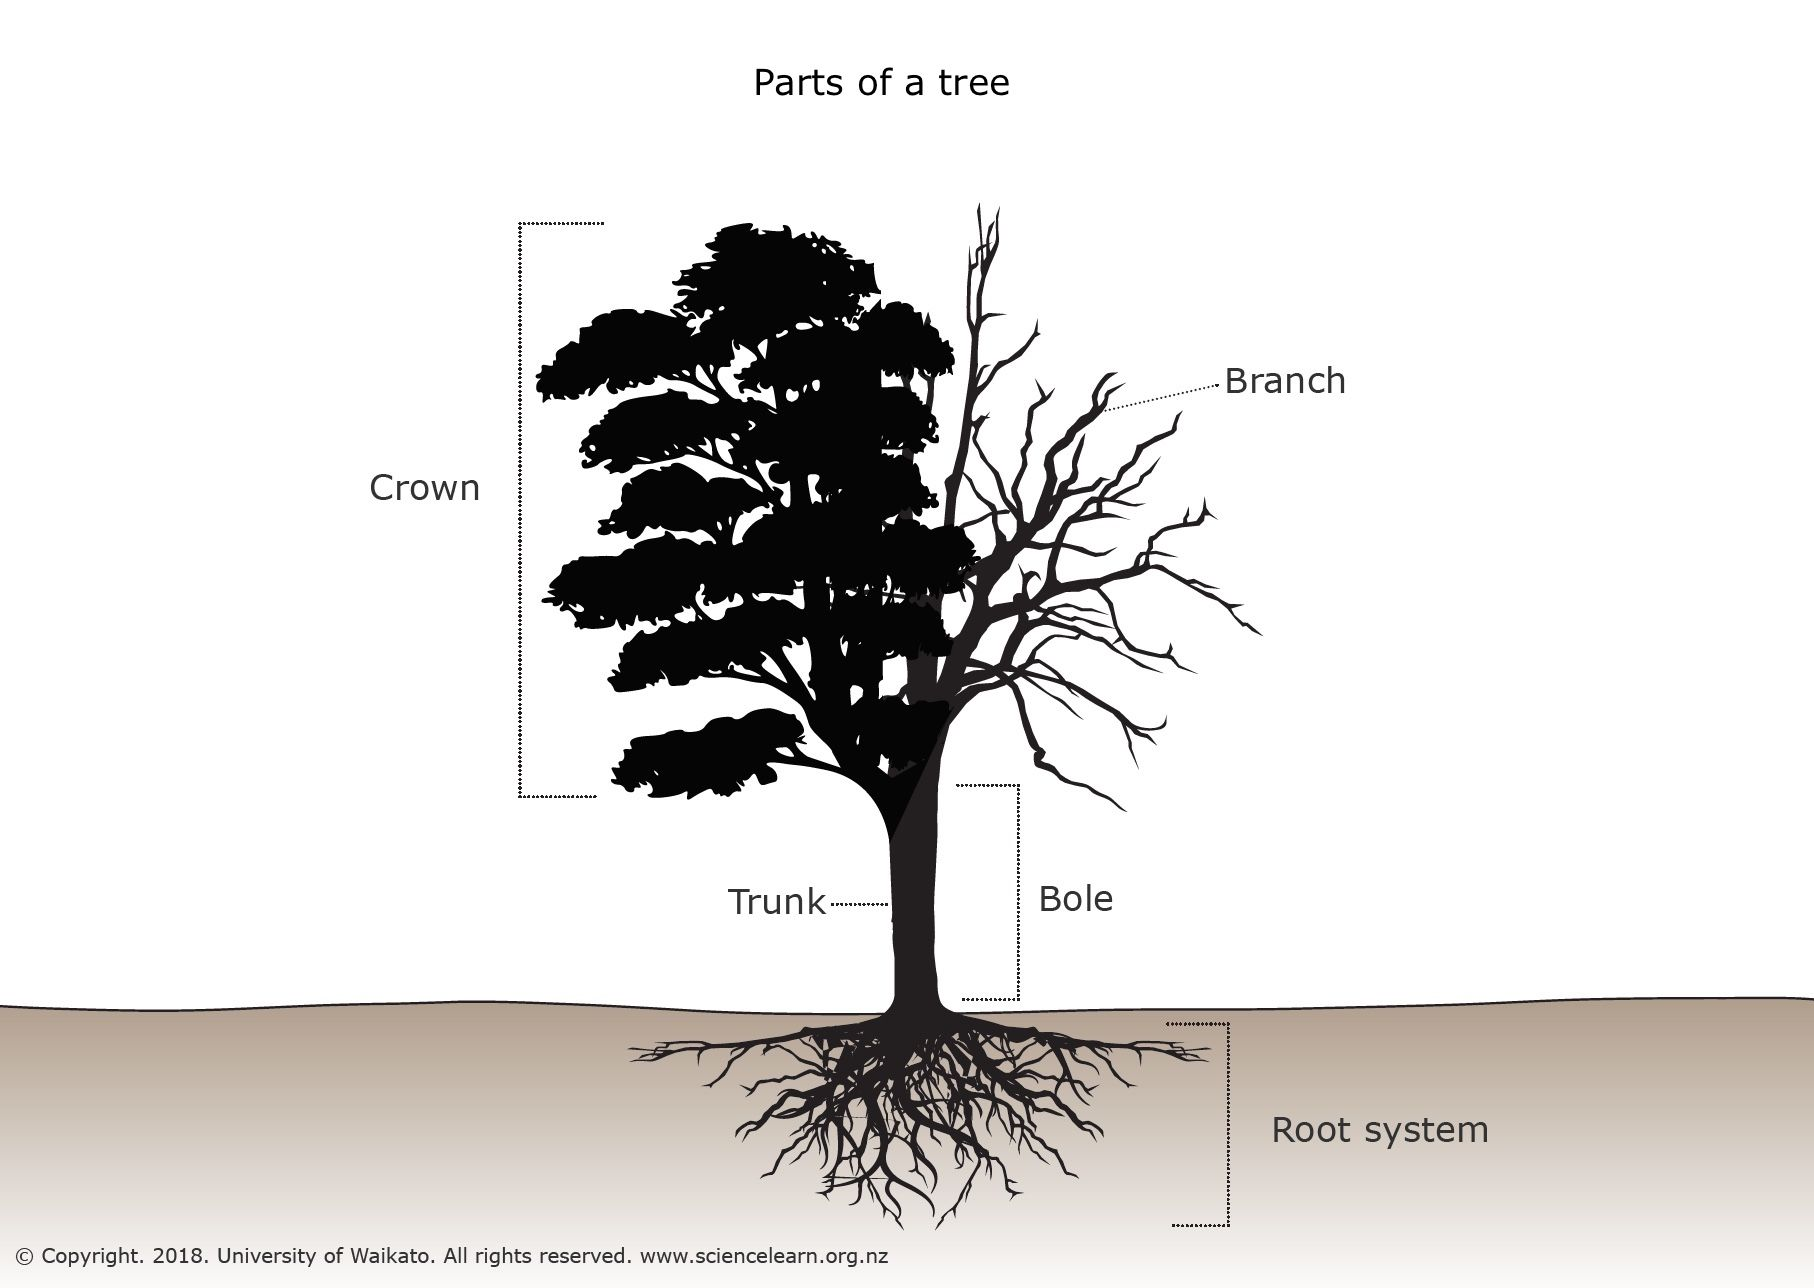 parts of a tree diagram this diagram labels the main parts of a tree the particular shapes and sizes of the parts may be in different proportions in  [ 1814 x 1288 Pixel ]